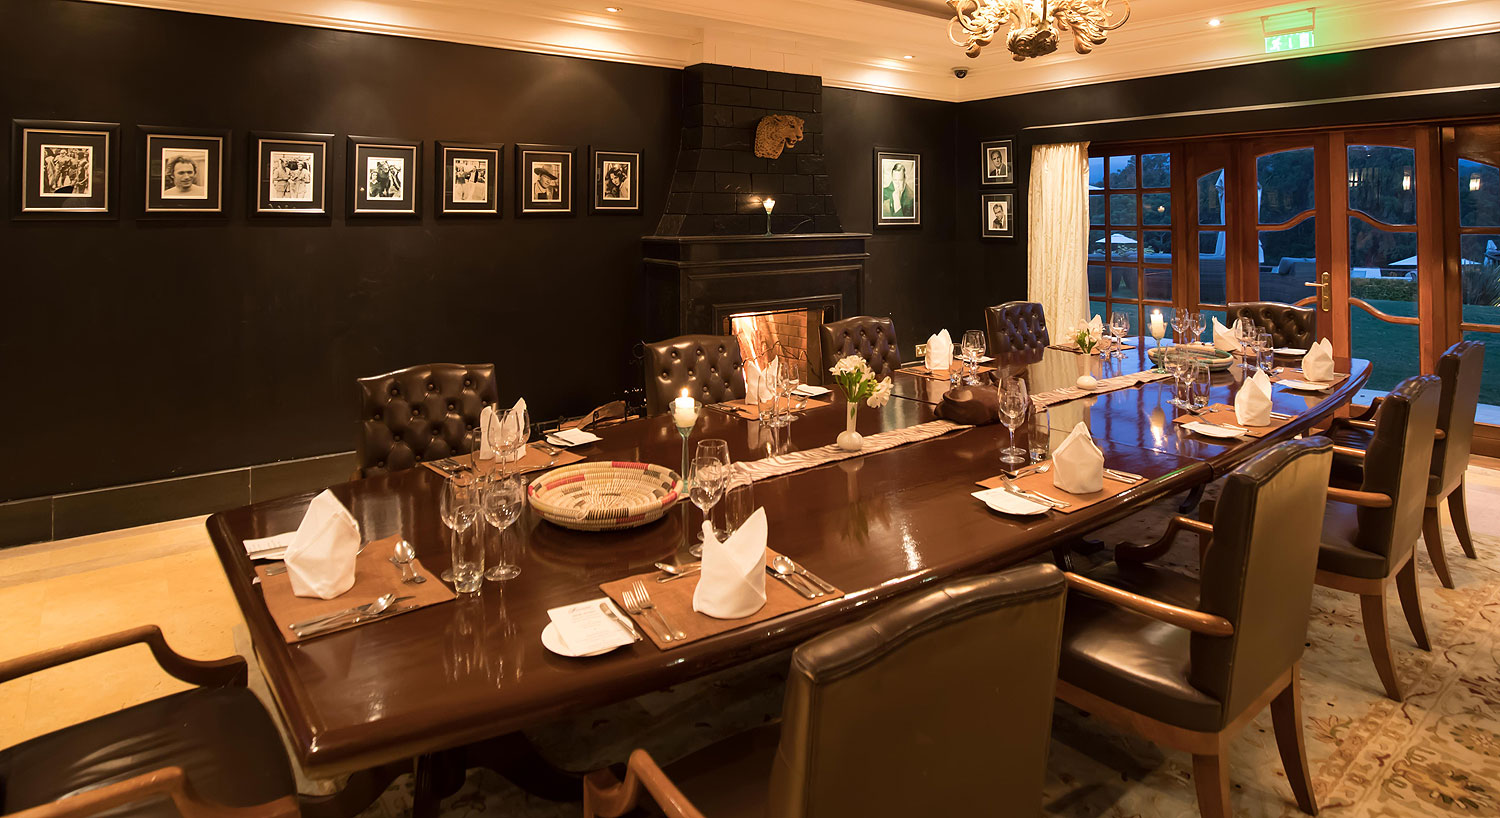 Private dining room at Tusks